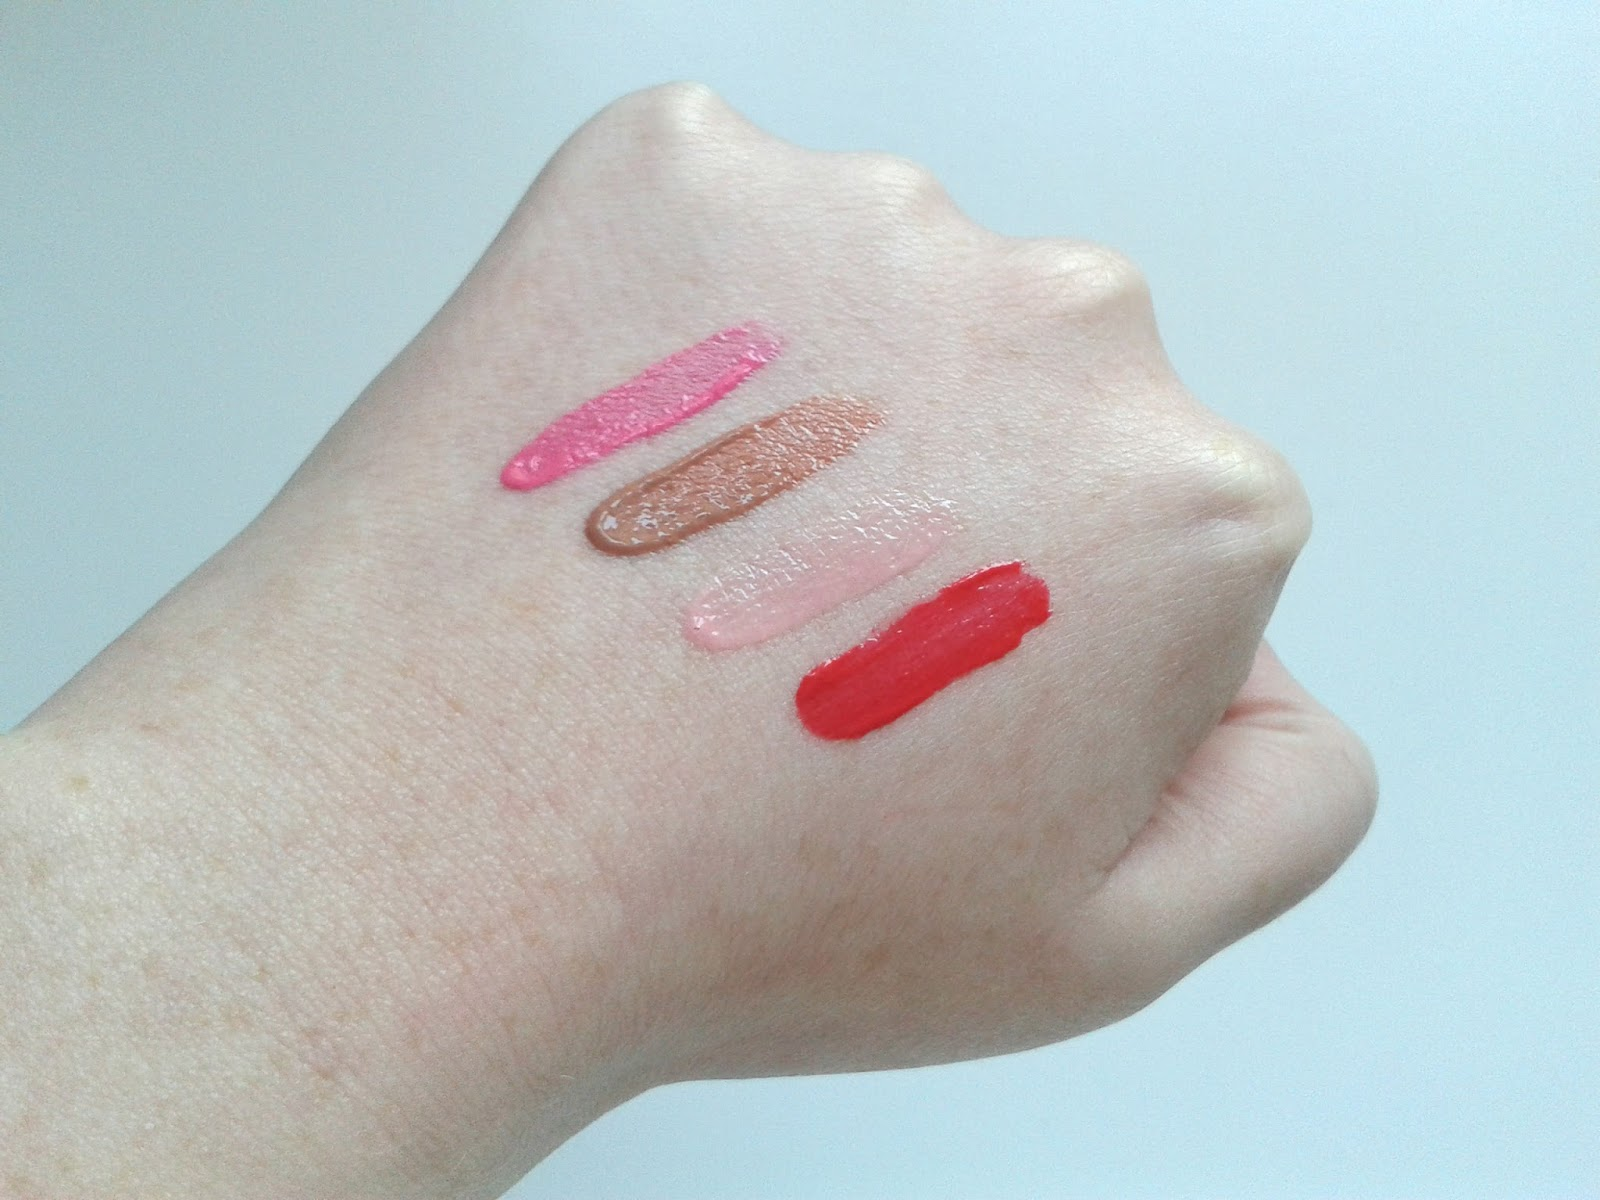 GOSH Lip Lacquers Review Swatches Funky Lips Crispy Lips Sweet Lips Lovely Lips